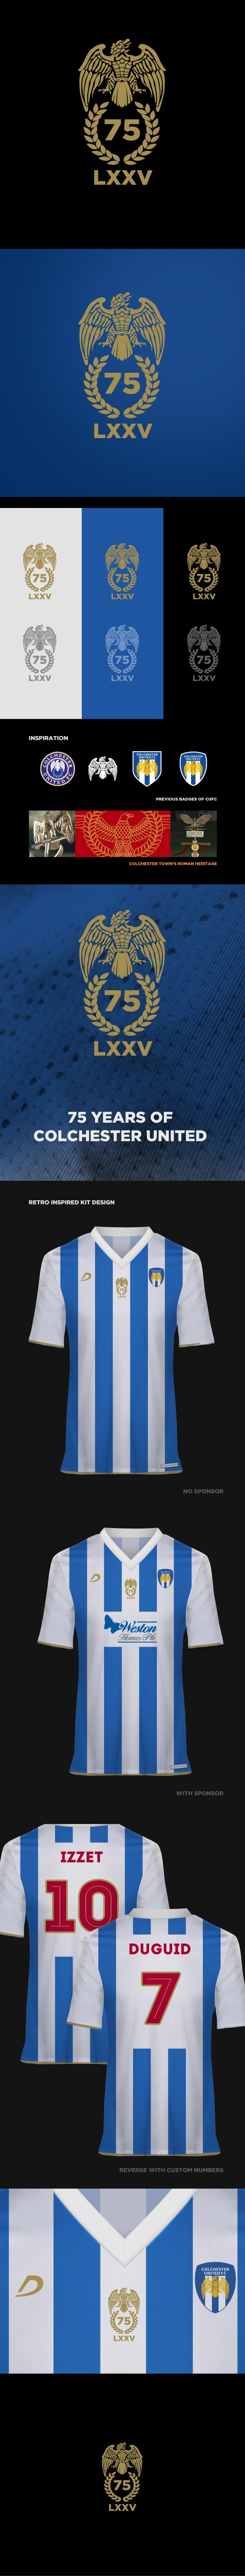 A logo and kit design to celebrate 75 years of Colchester United